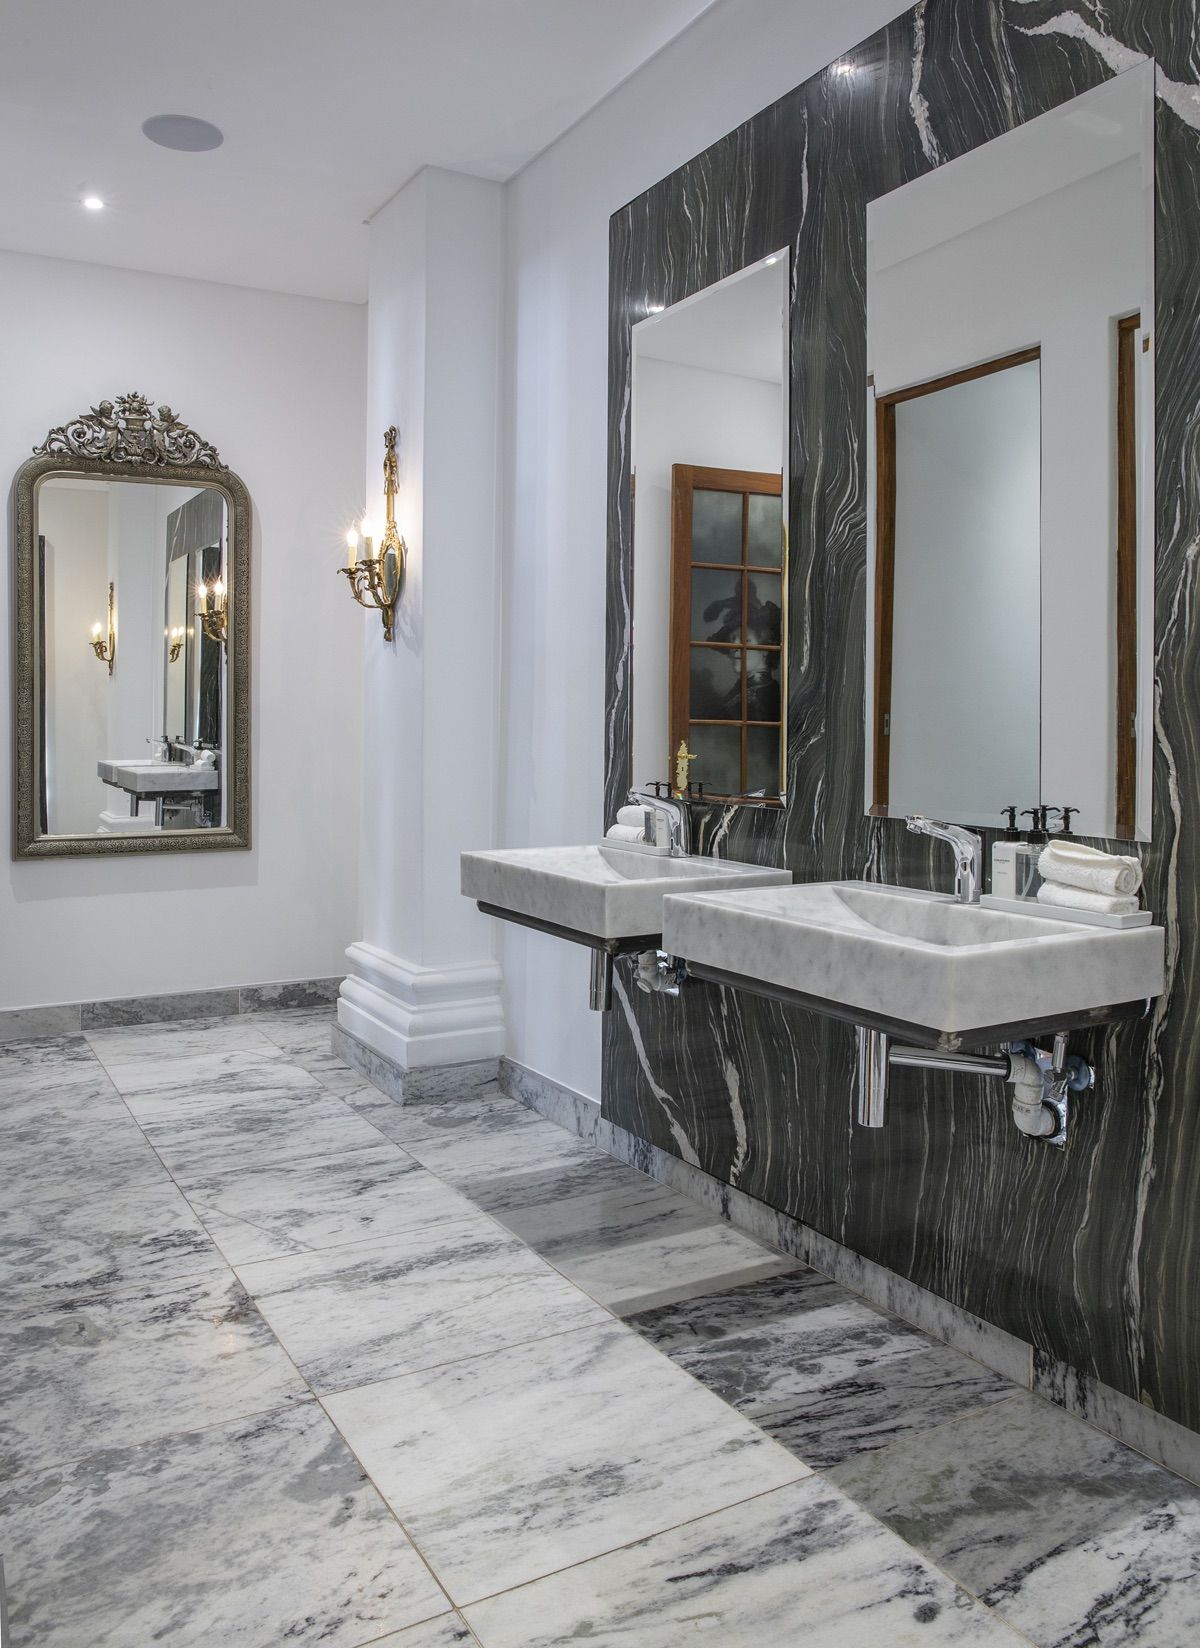 Artmar-MARBLE-SLABS_COMMERCIAL-PROJECT_Lanzerac-Hotel_Fantasy-Green-Marble-Feature-Wall-Bespoke-Installation_Supply-Fit-with-600x600x20mm_Volakas-Marble-Floors-1.jpg